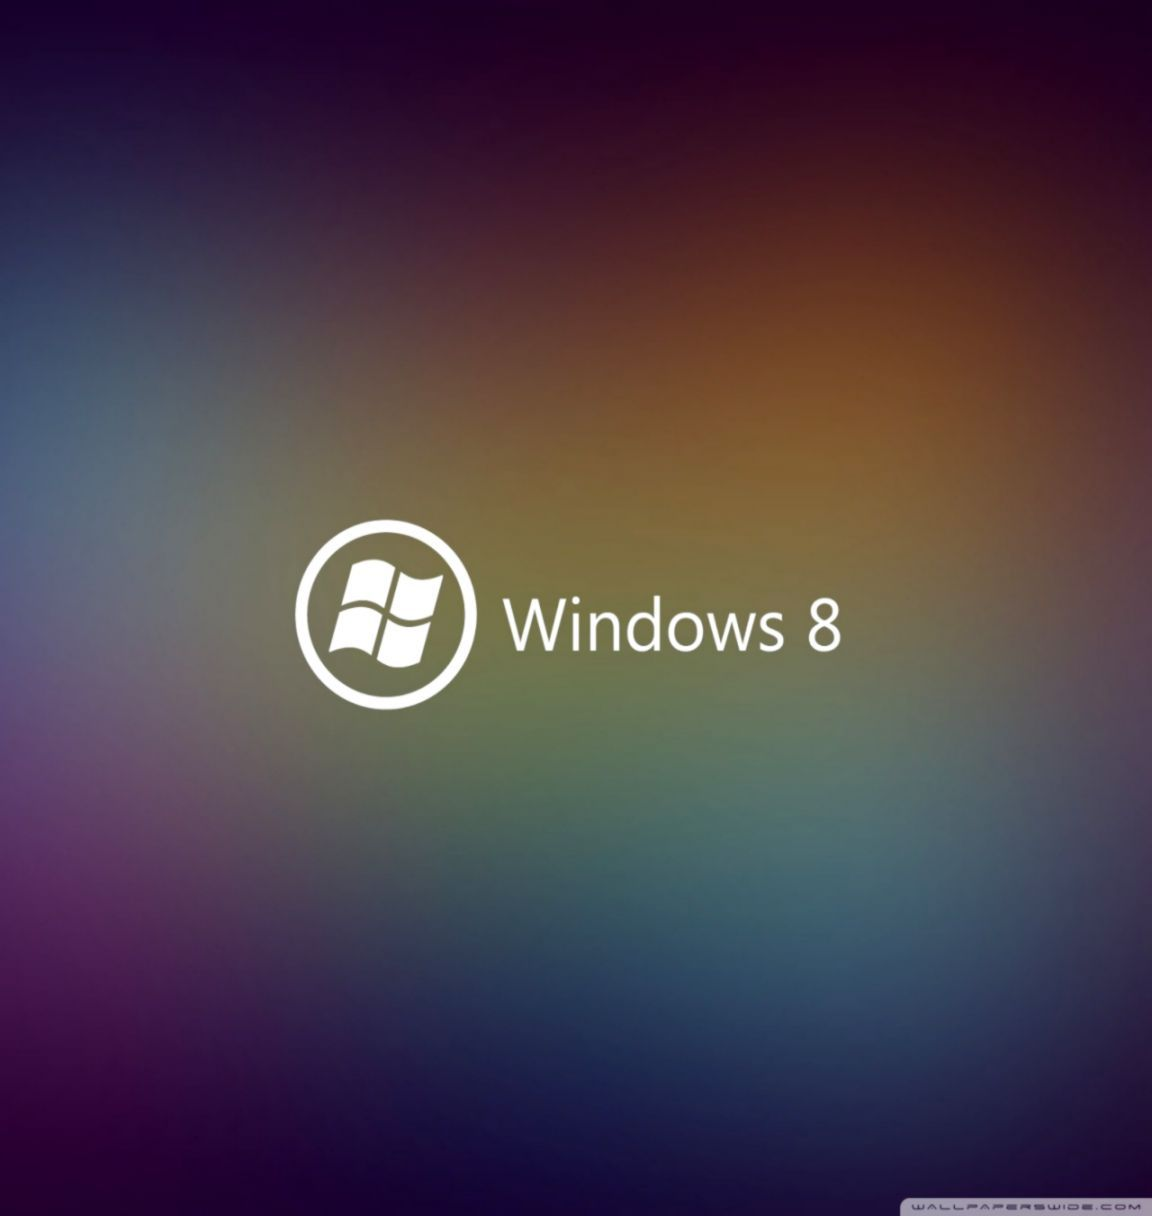 Windows 8 Wallpaper For Android ...